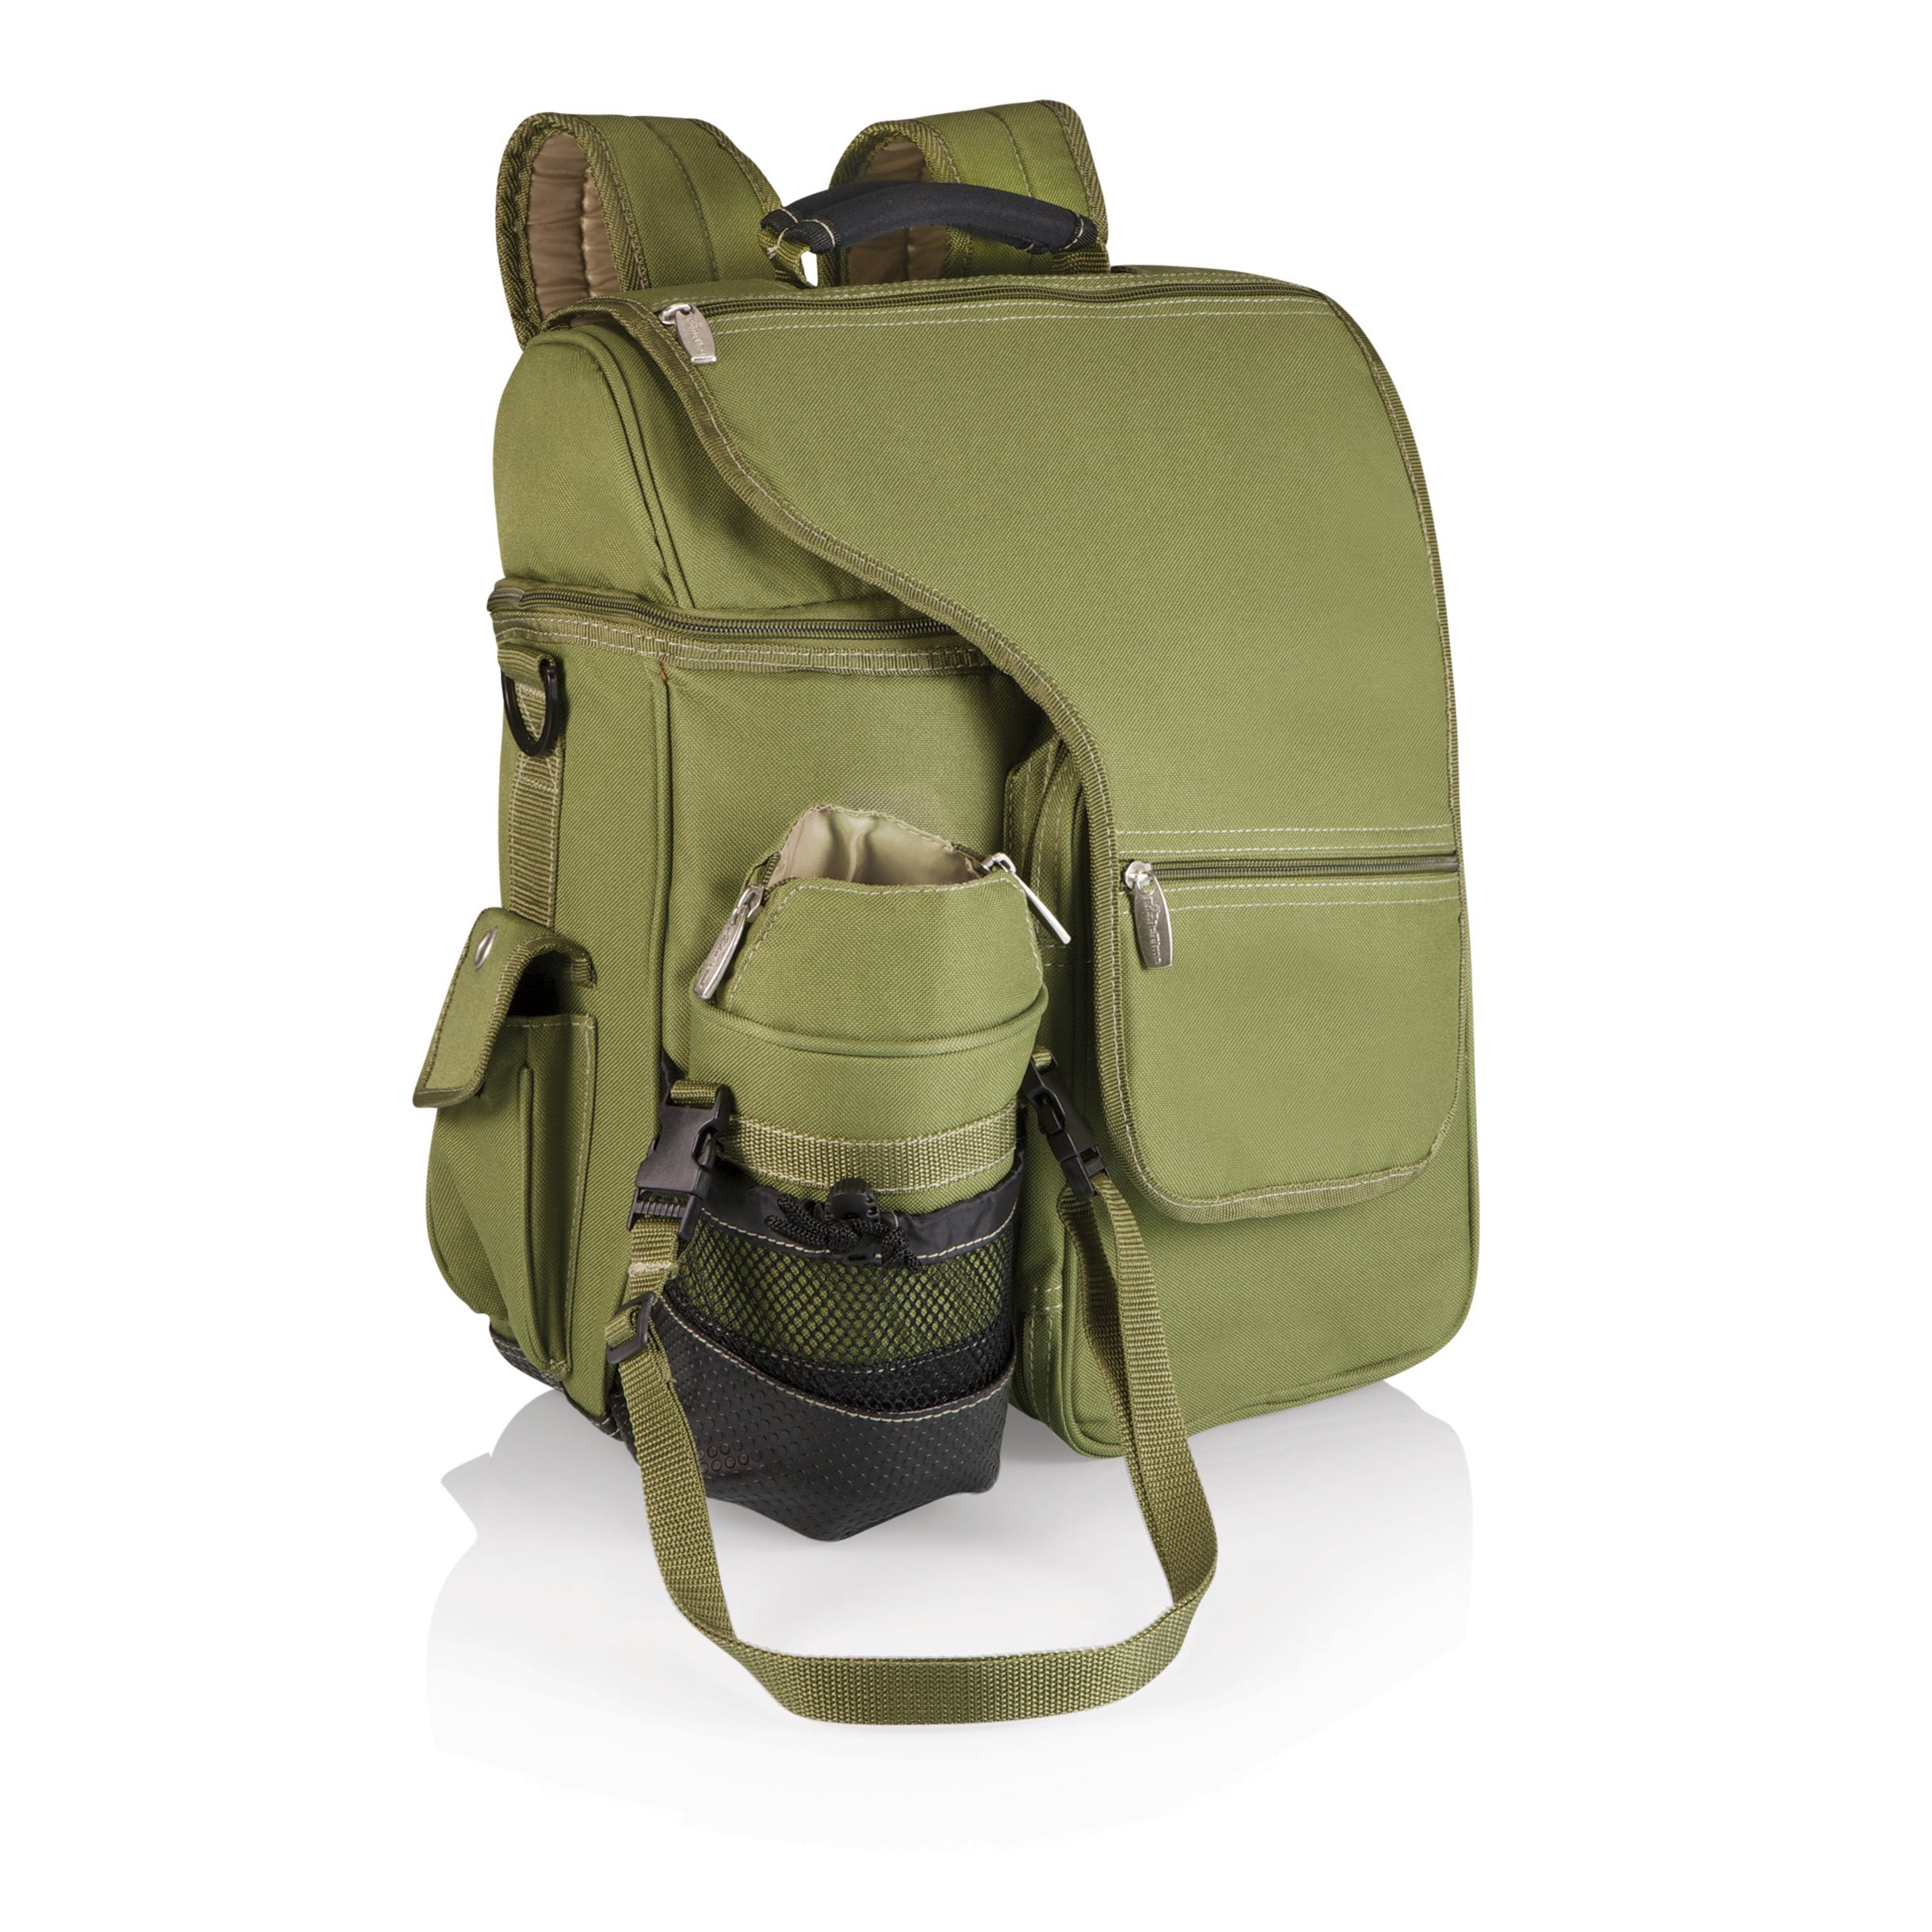 ONIVA - a Picnic Time Brand Turismo Insulated Backpack Cooler, Olive